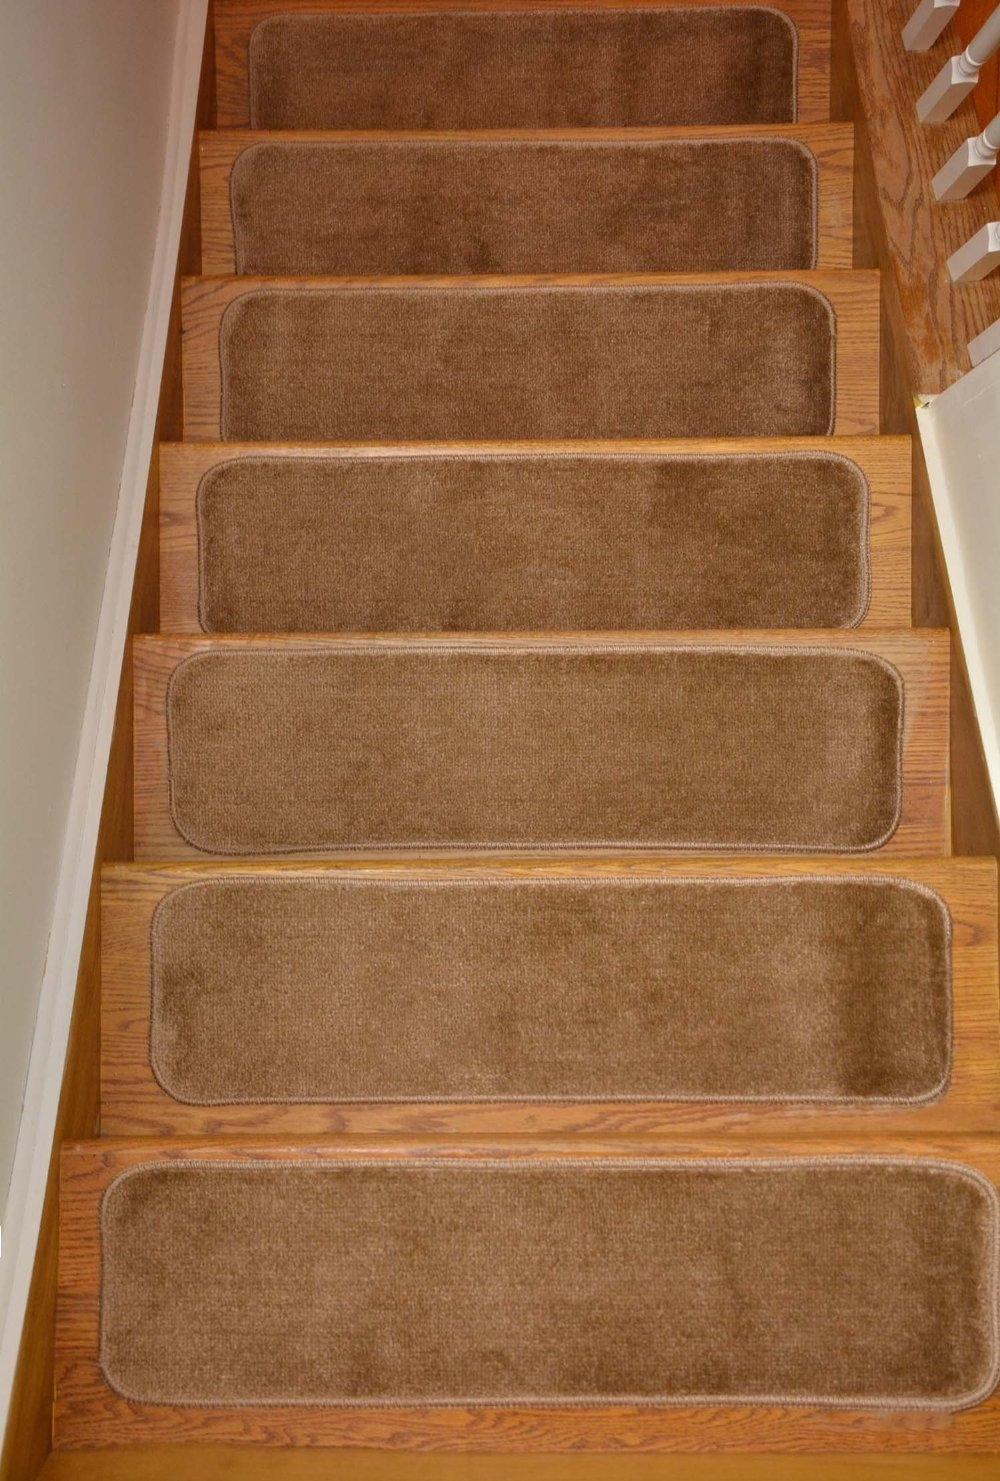 Comfy Stair Tread Treads Indoor Skid Slip Resistant Carpet Stair Within Skid Resistant Stair Treads (#6 of 20)